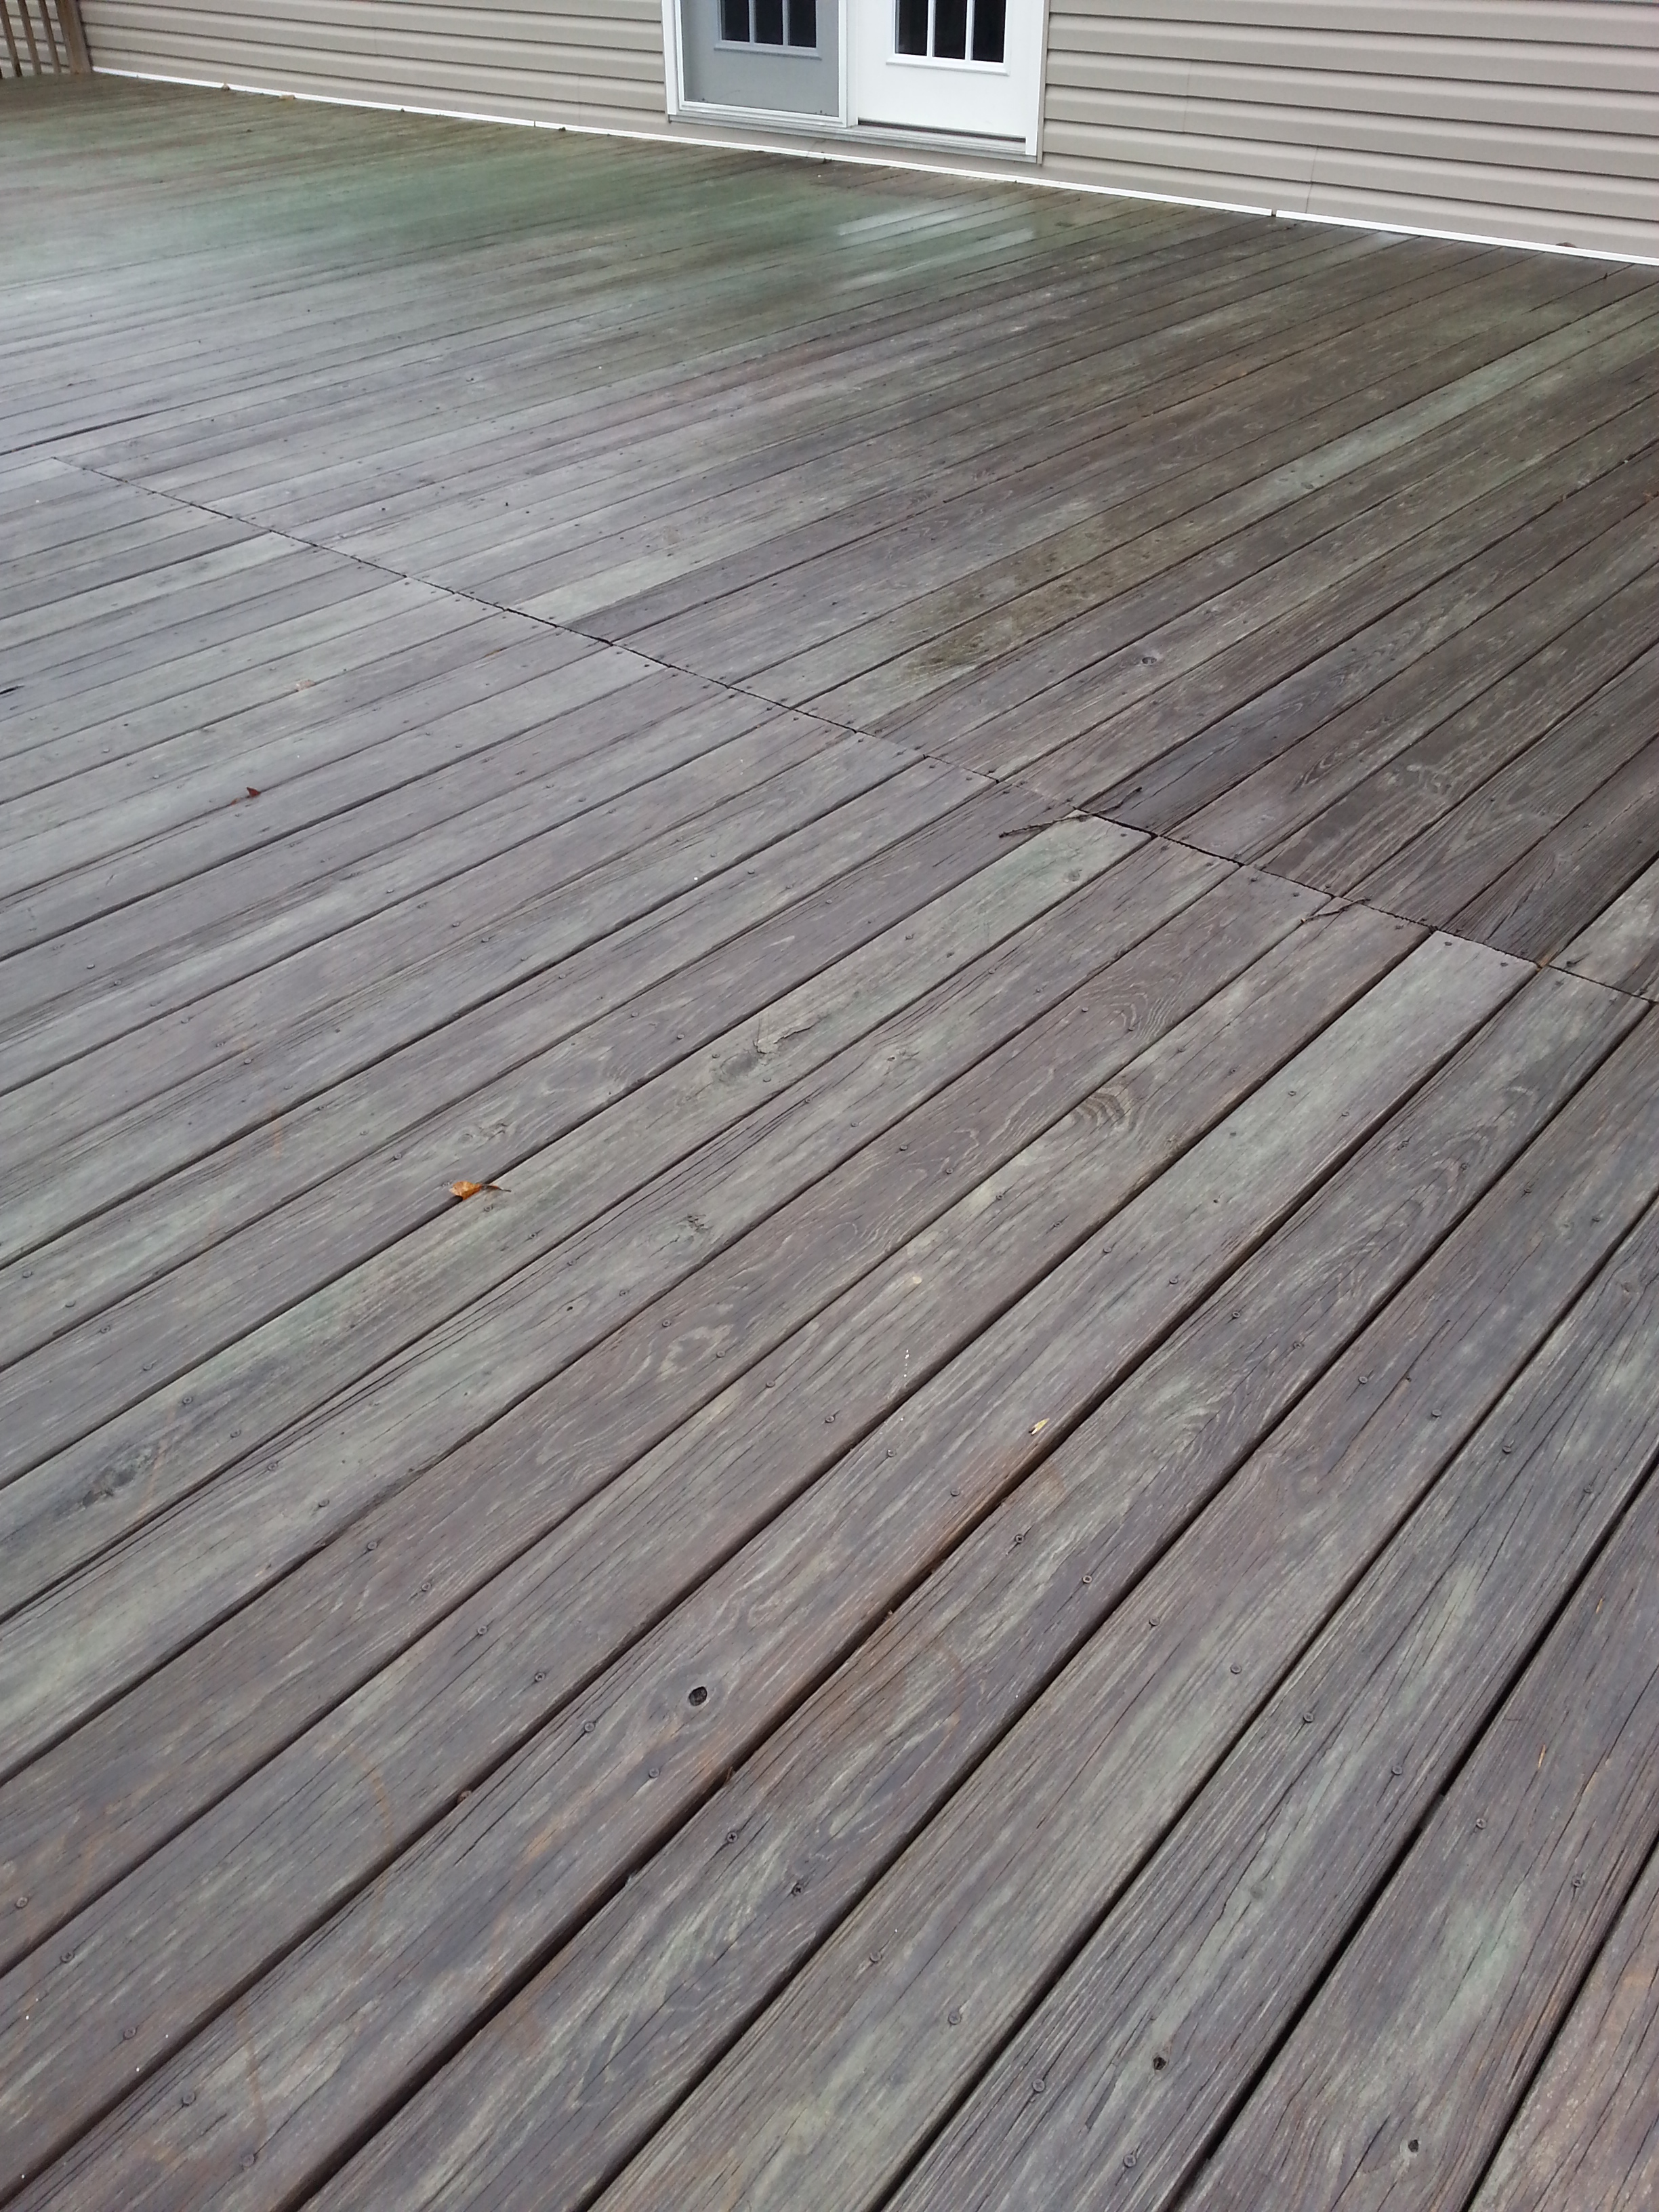 Deck Cleaning Protection And More By Renew Crew Renew